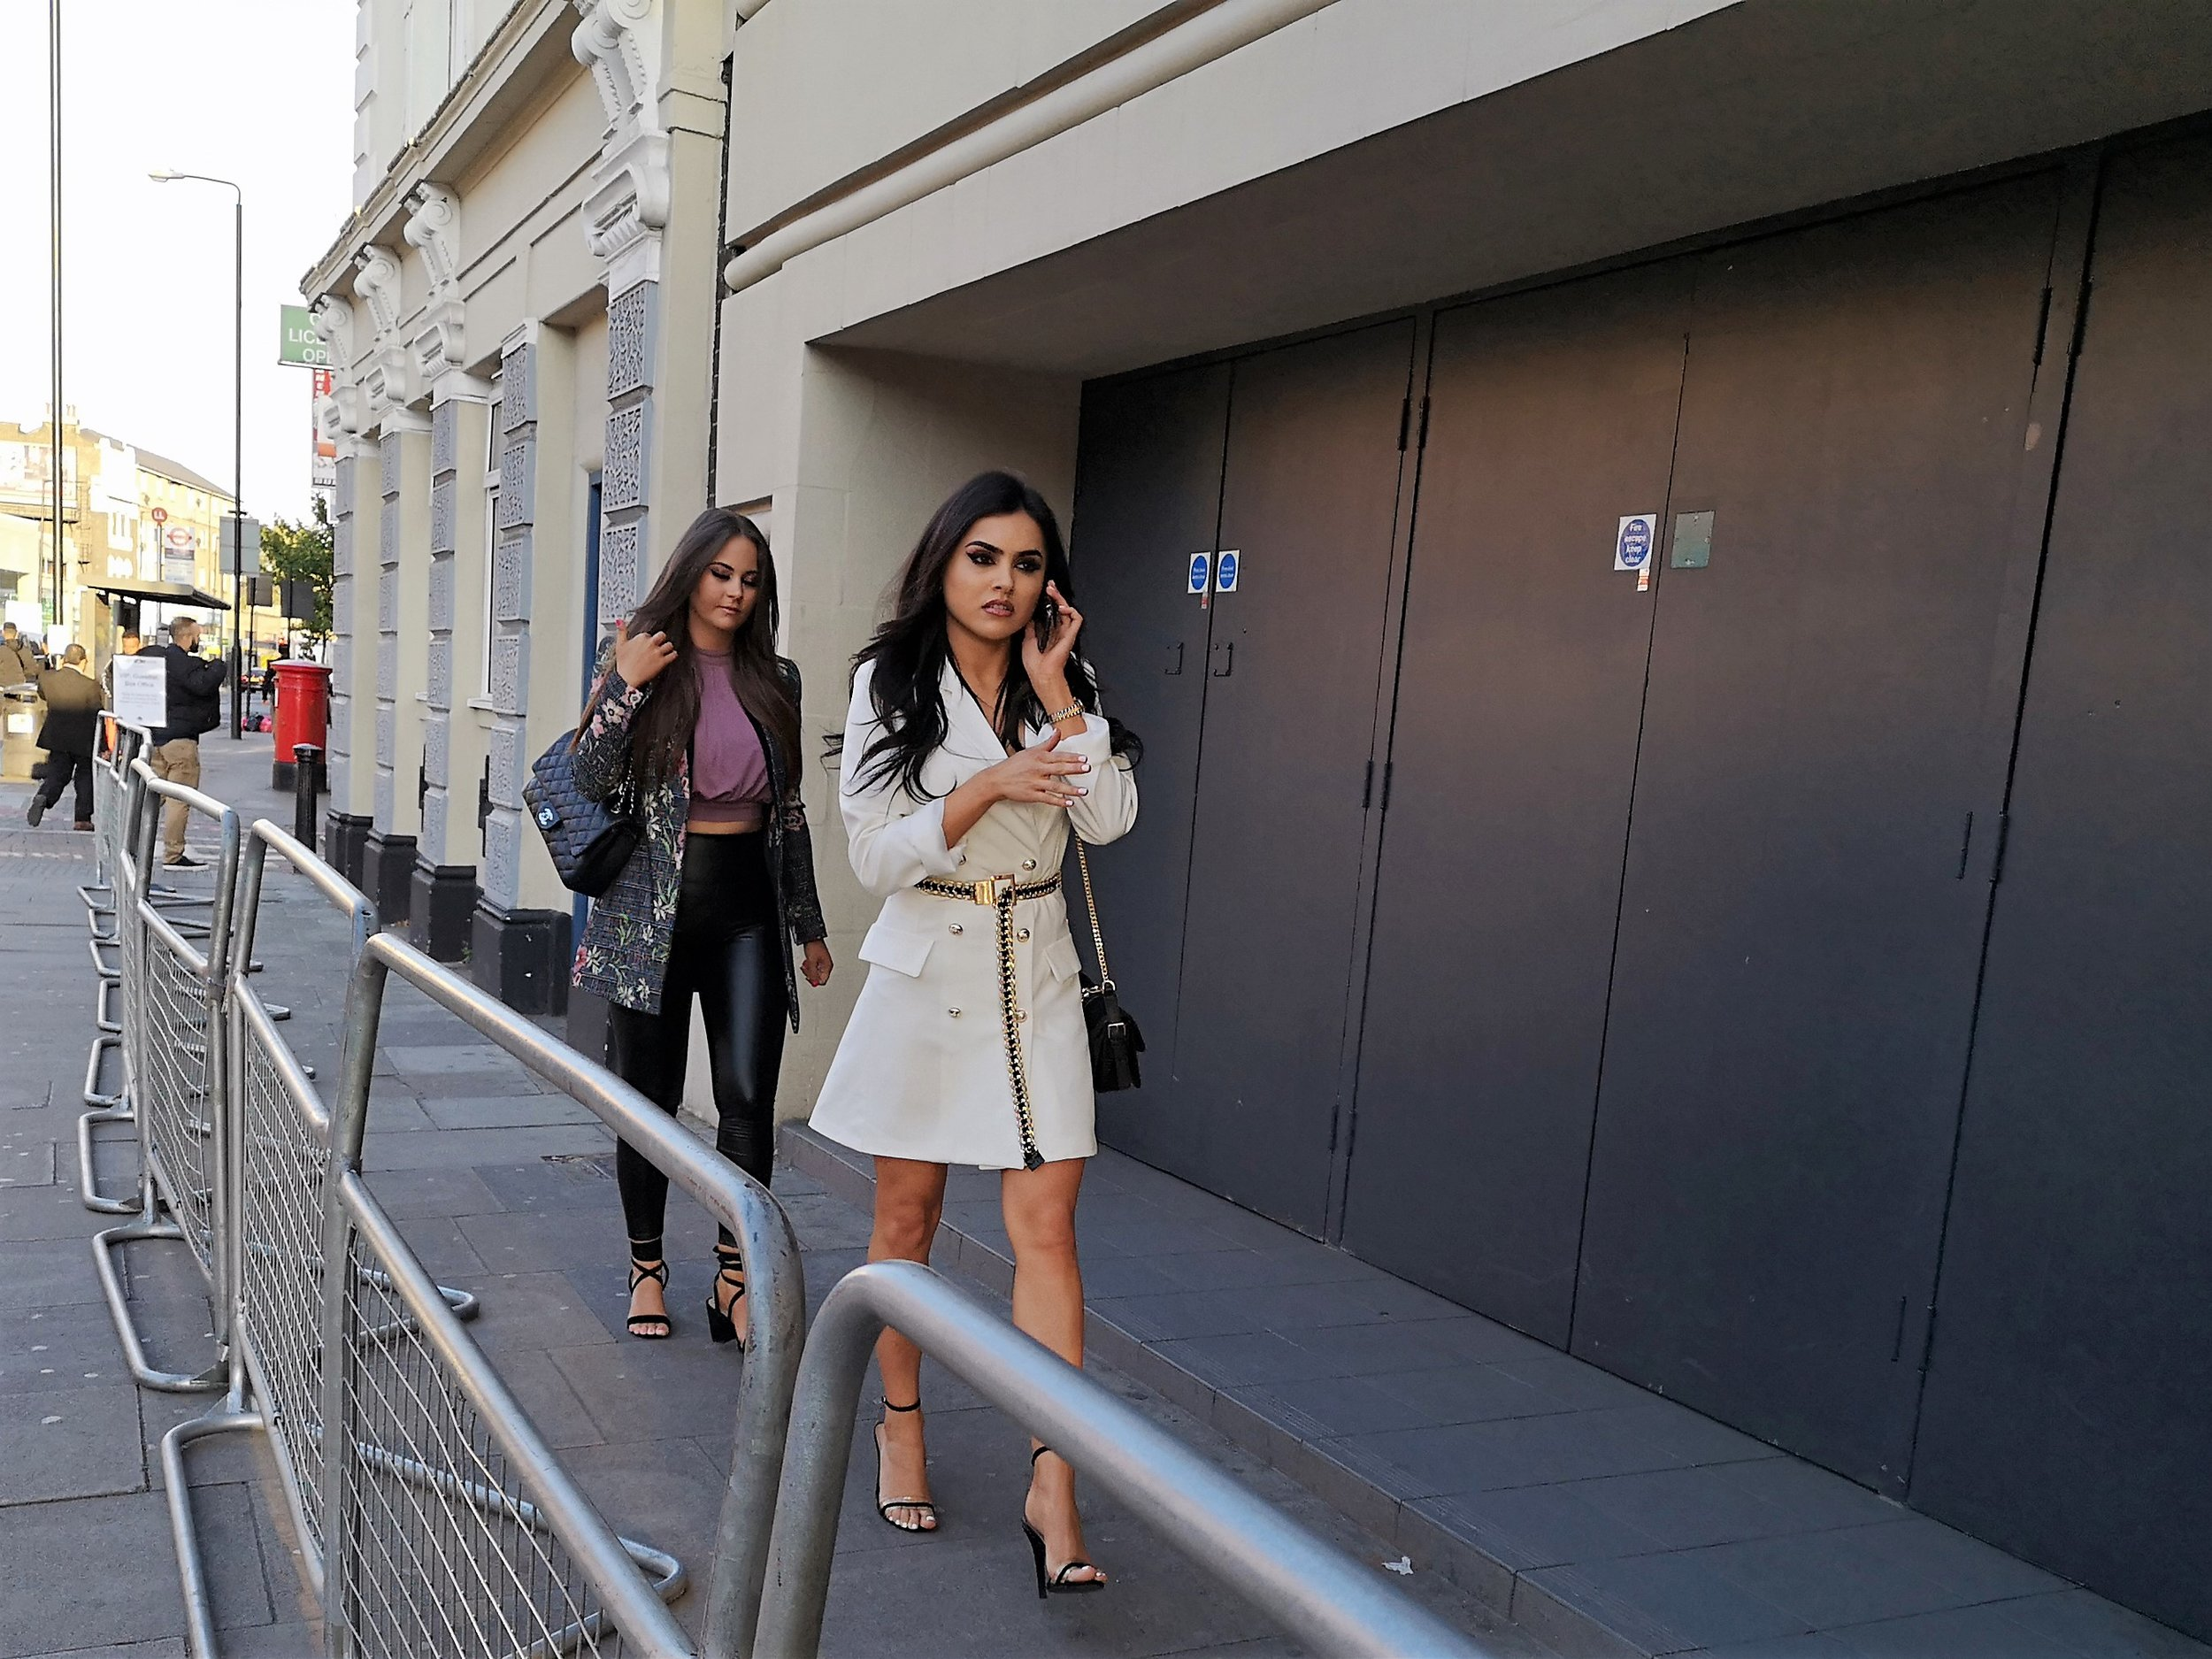 """""""Babes, I left home hours ago and I'm just in traffic at the moment. Hold on, I'm just going through a tunnel…."""" """"That would be easier to believe if I wasn't walking right behind you Babes""""  Per wireimage, the lady in front is Sofia Felipe… sadly wireimage elaborates no further."""